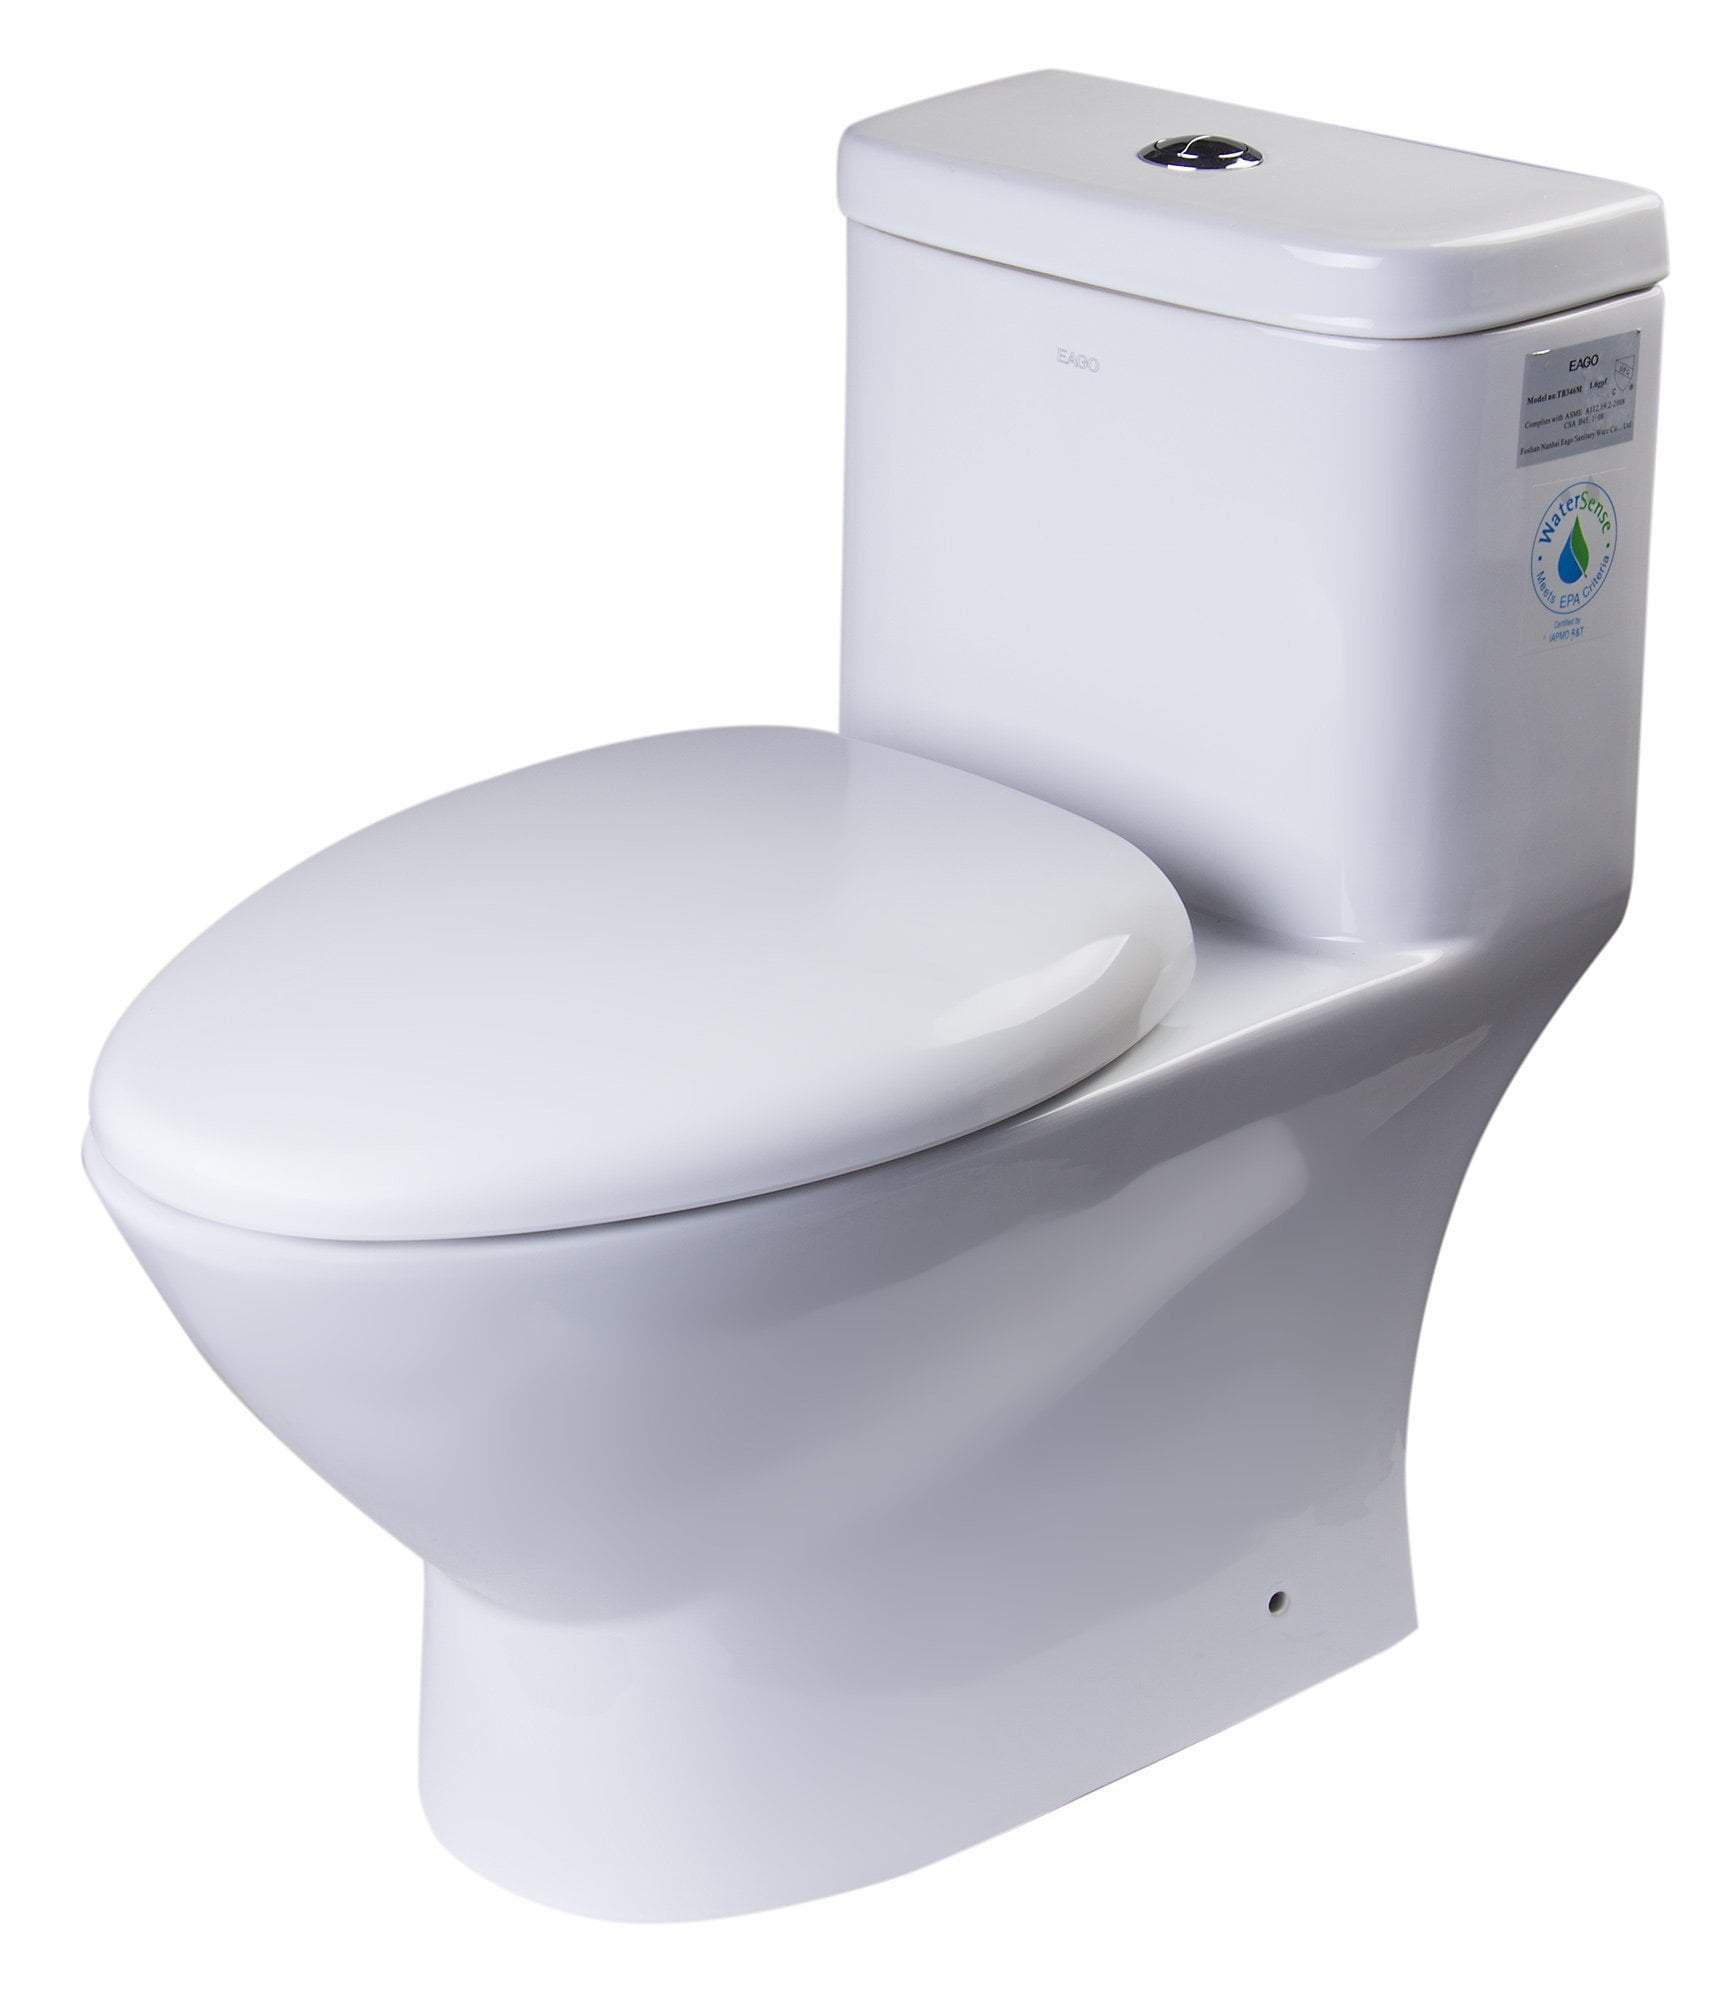 MODERN DUAL FLUSH ONE PIECE ECO-FRIENDLY HIGH EFFICIENCY LOW FLUSH CERAMIC TOILET